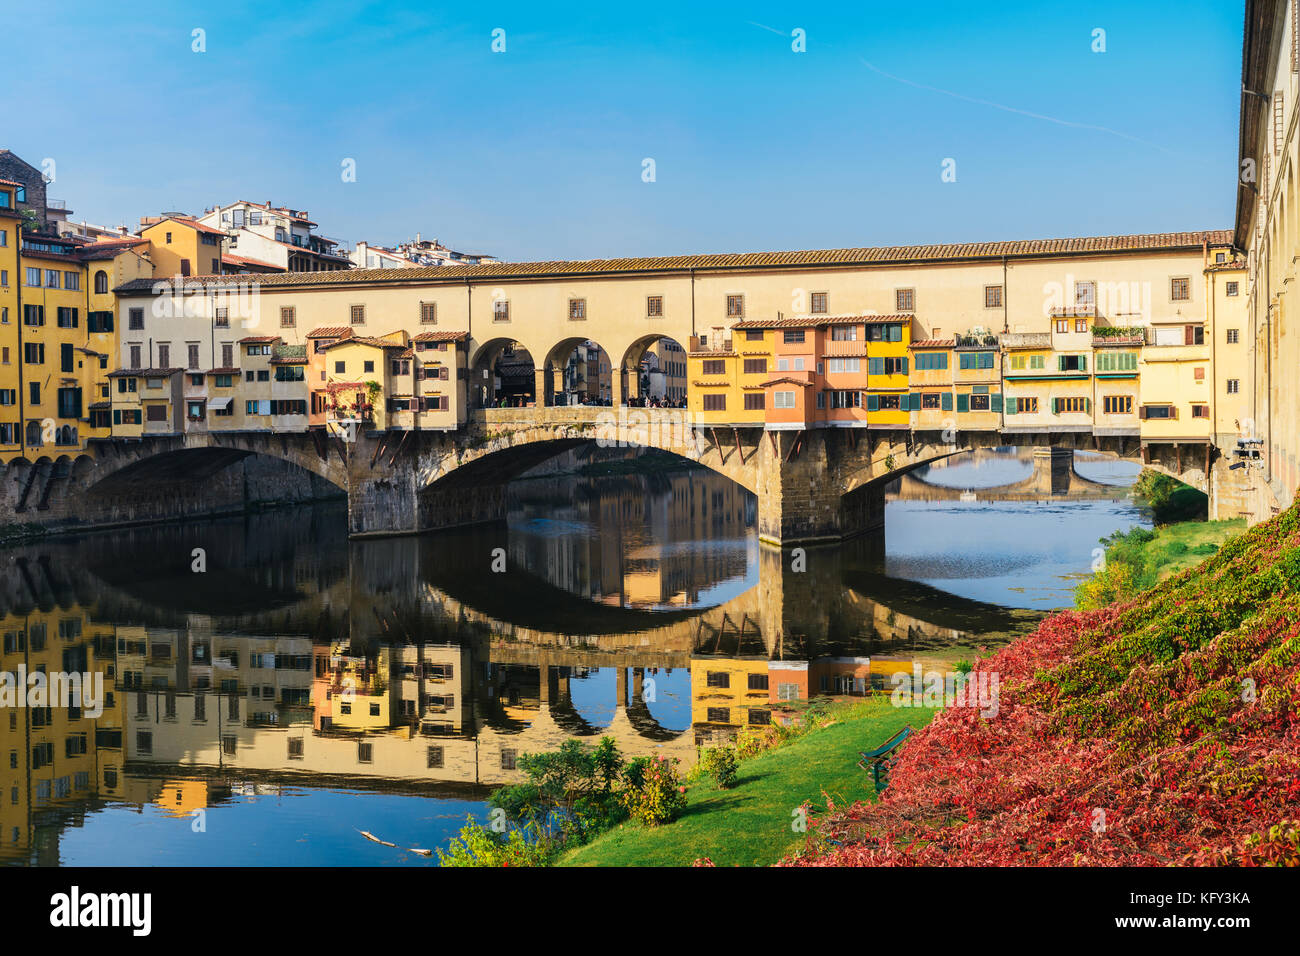 Ponte Vecchio (old bridge) in Florence, Tuscany, Italy on a beautiful autumn day Stock Photo